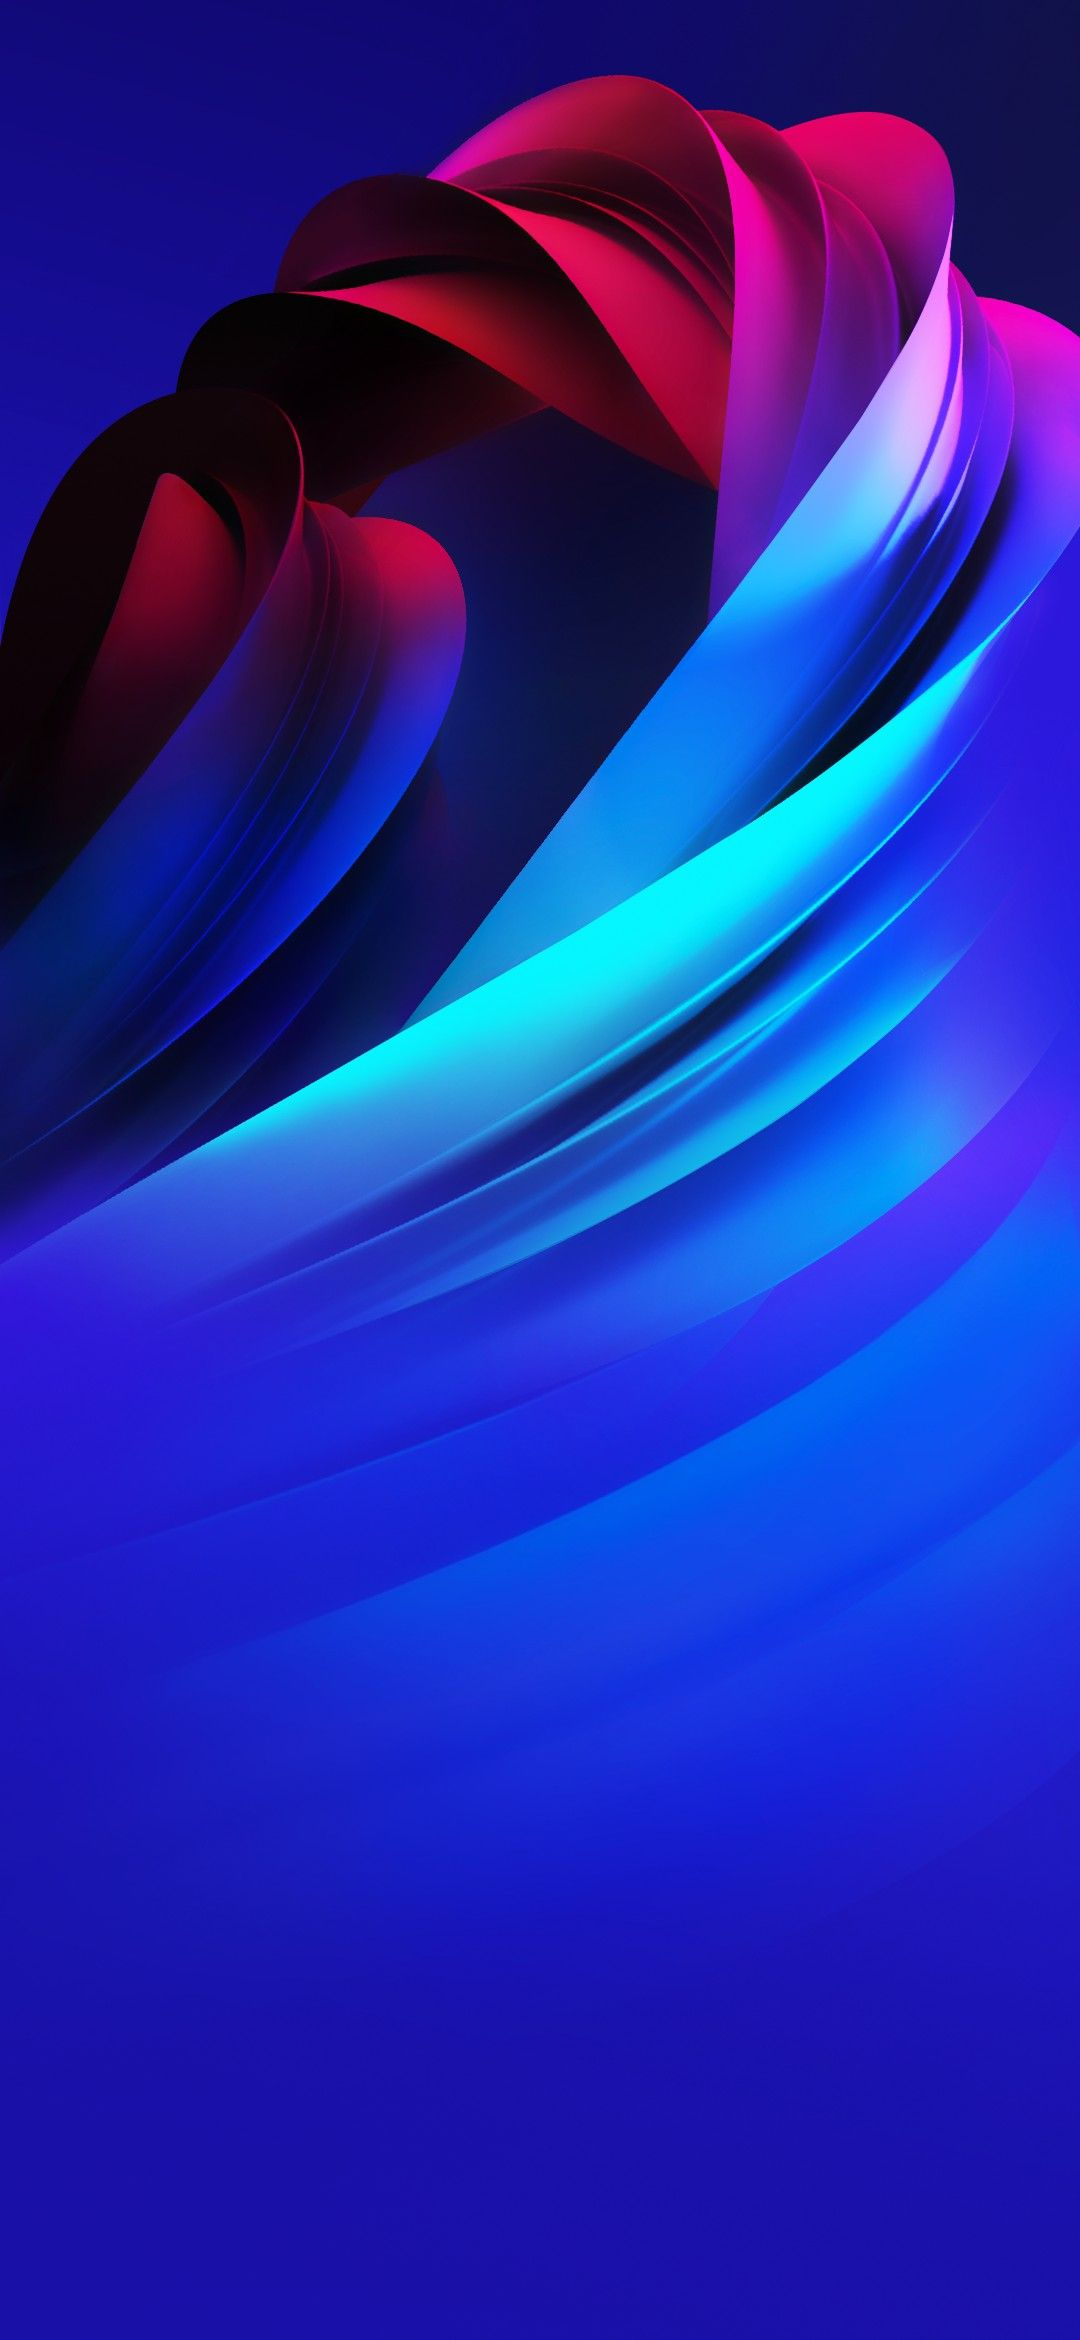 Vivo Next Dual Display Xperia Wallpaper Android Wallpaper